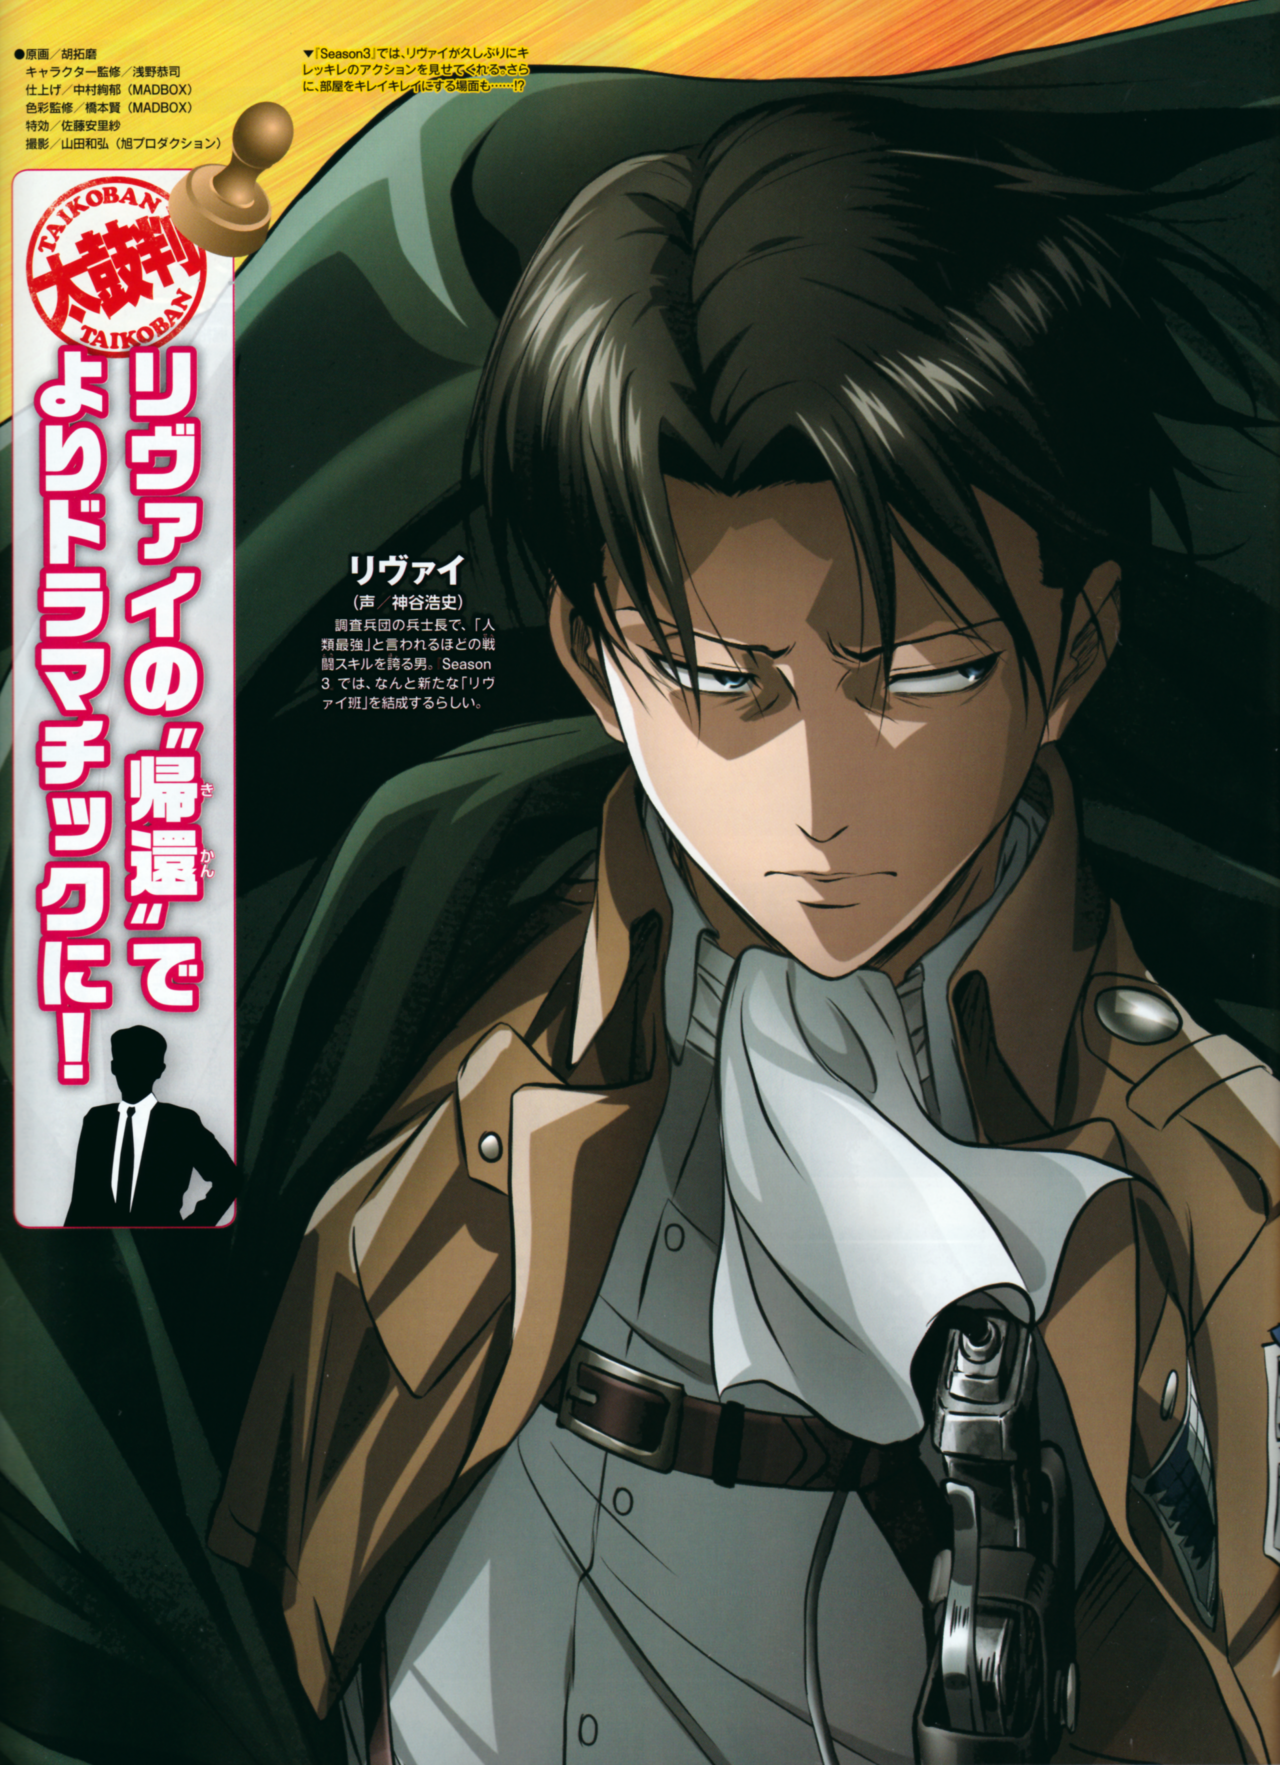 attack on titan season 3 Levi (With images) Attack on